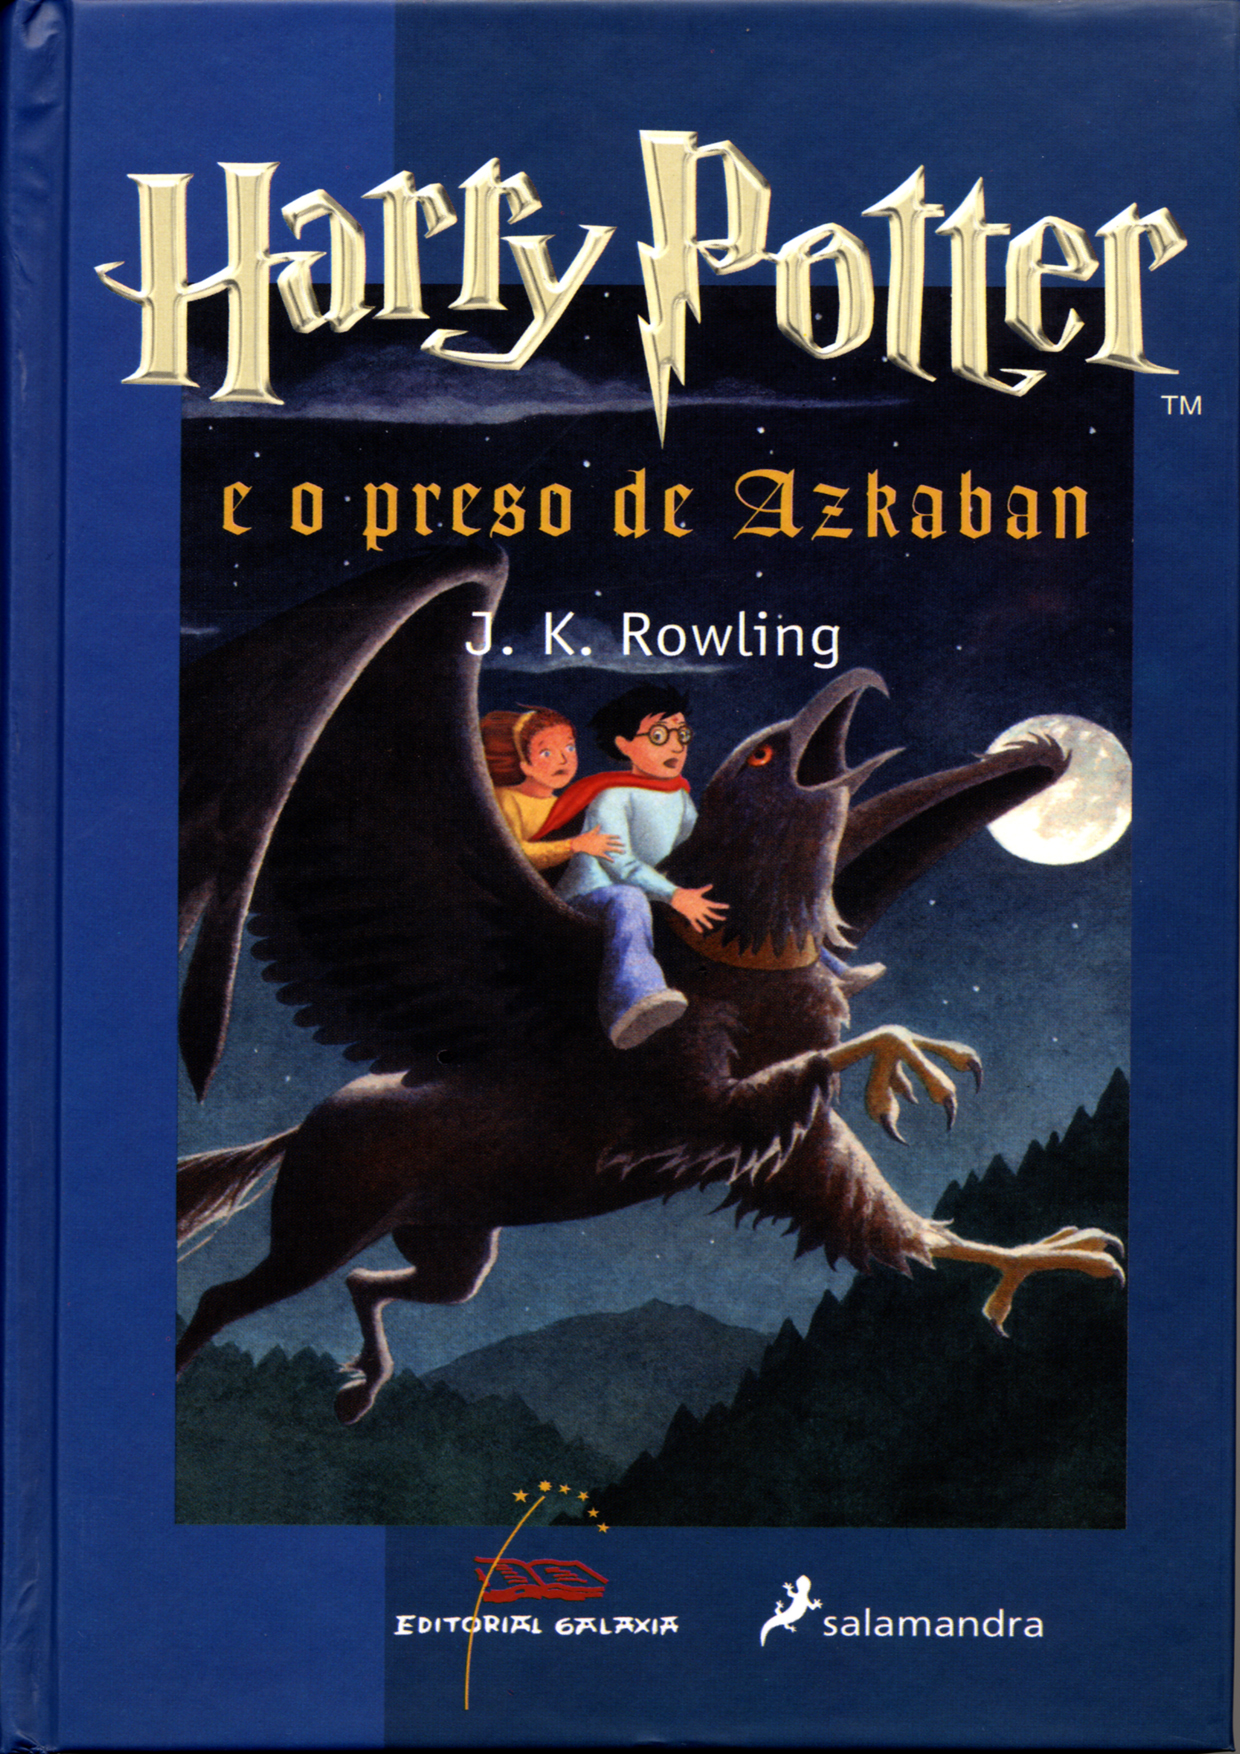 harry potter e o preso de azkaban